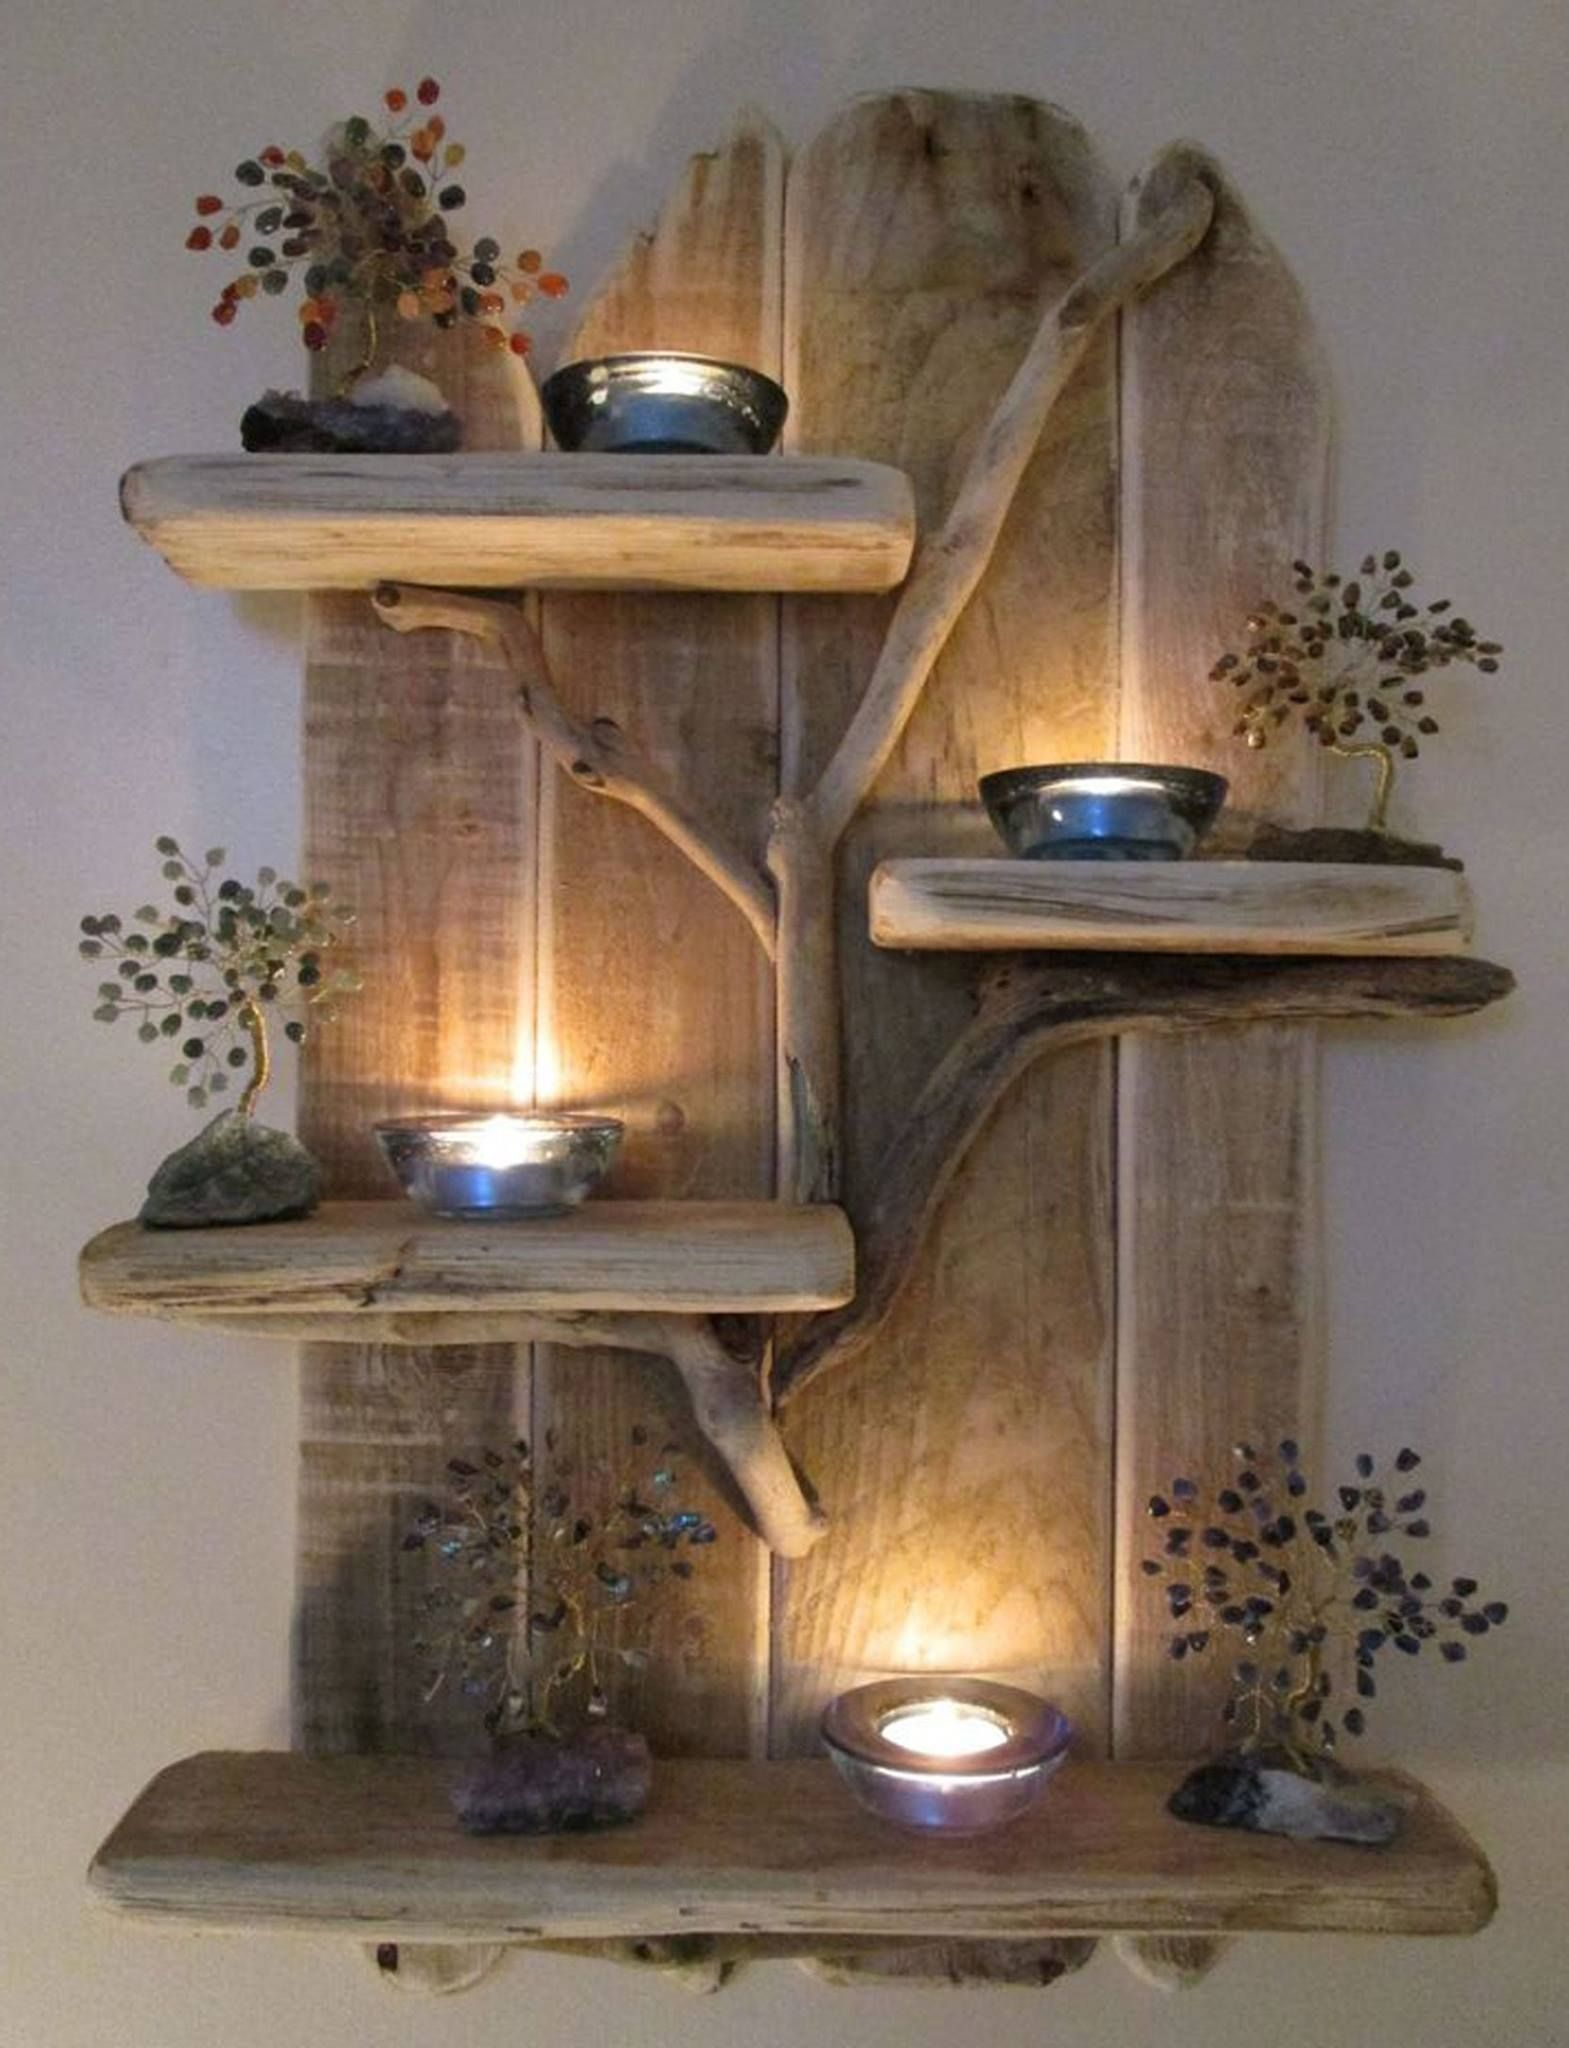 Great way to display air plants or succulents succulents cacti pint - Etagere murale ancienne ...